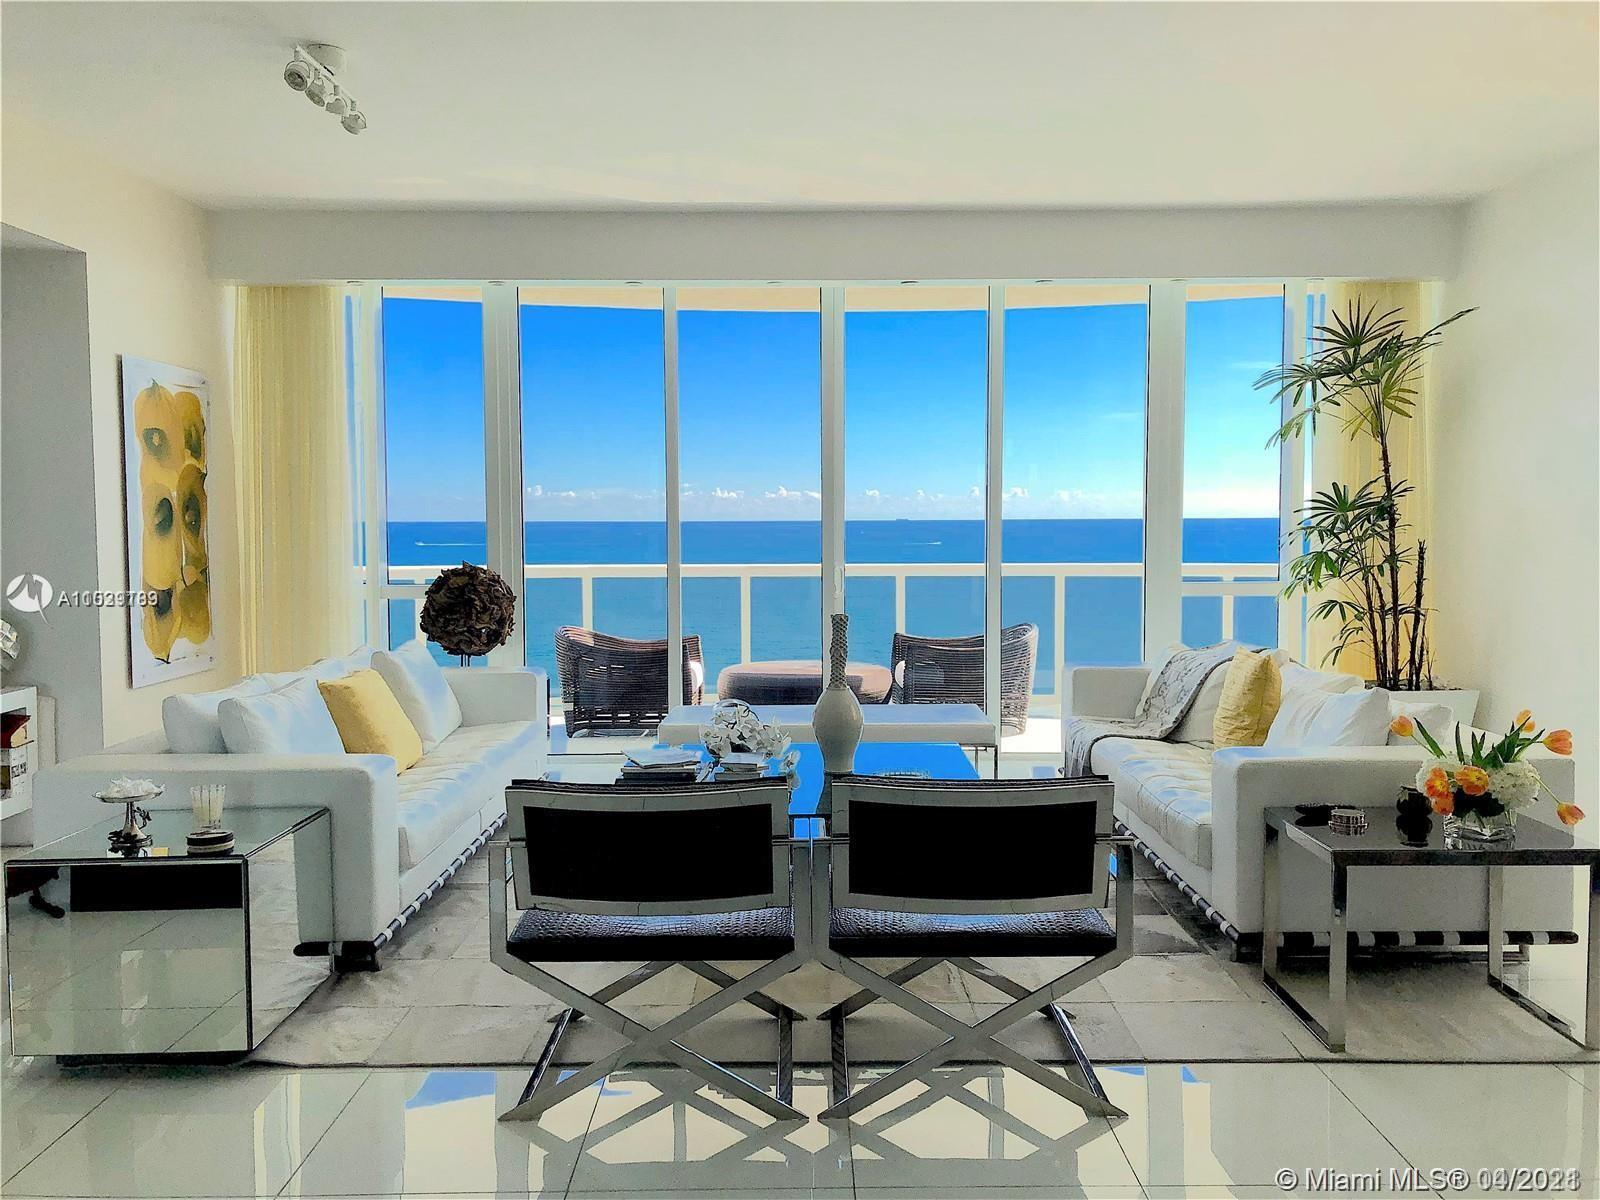 Welcome home. As you exit the private elevator directly into your residence and enjoy the 180-degree views of the ocean. This unit was originally a developer model apartment. Many custom upgrades including custom lighting fixtures, upgraded lighting in all rooms, custom doors, porcelain glass flooring throughout, and upgraded bathrooms featuring TOTO toilets and custom countertops. Listen to the ocean waves from this 01 residence, the largest at Trump Towers, and the only to feature a large wrap-around balcony terrace with a direct east breathtaking view of the ocean. Trump Towers features 5-star amenities including an oceanfront fitness center, spa, full beach service, on-site restaurant, and complimentary valet parking for all residents and guests. Let us show you your future home today.